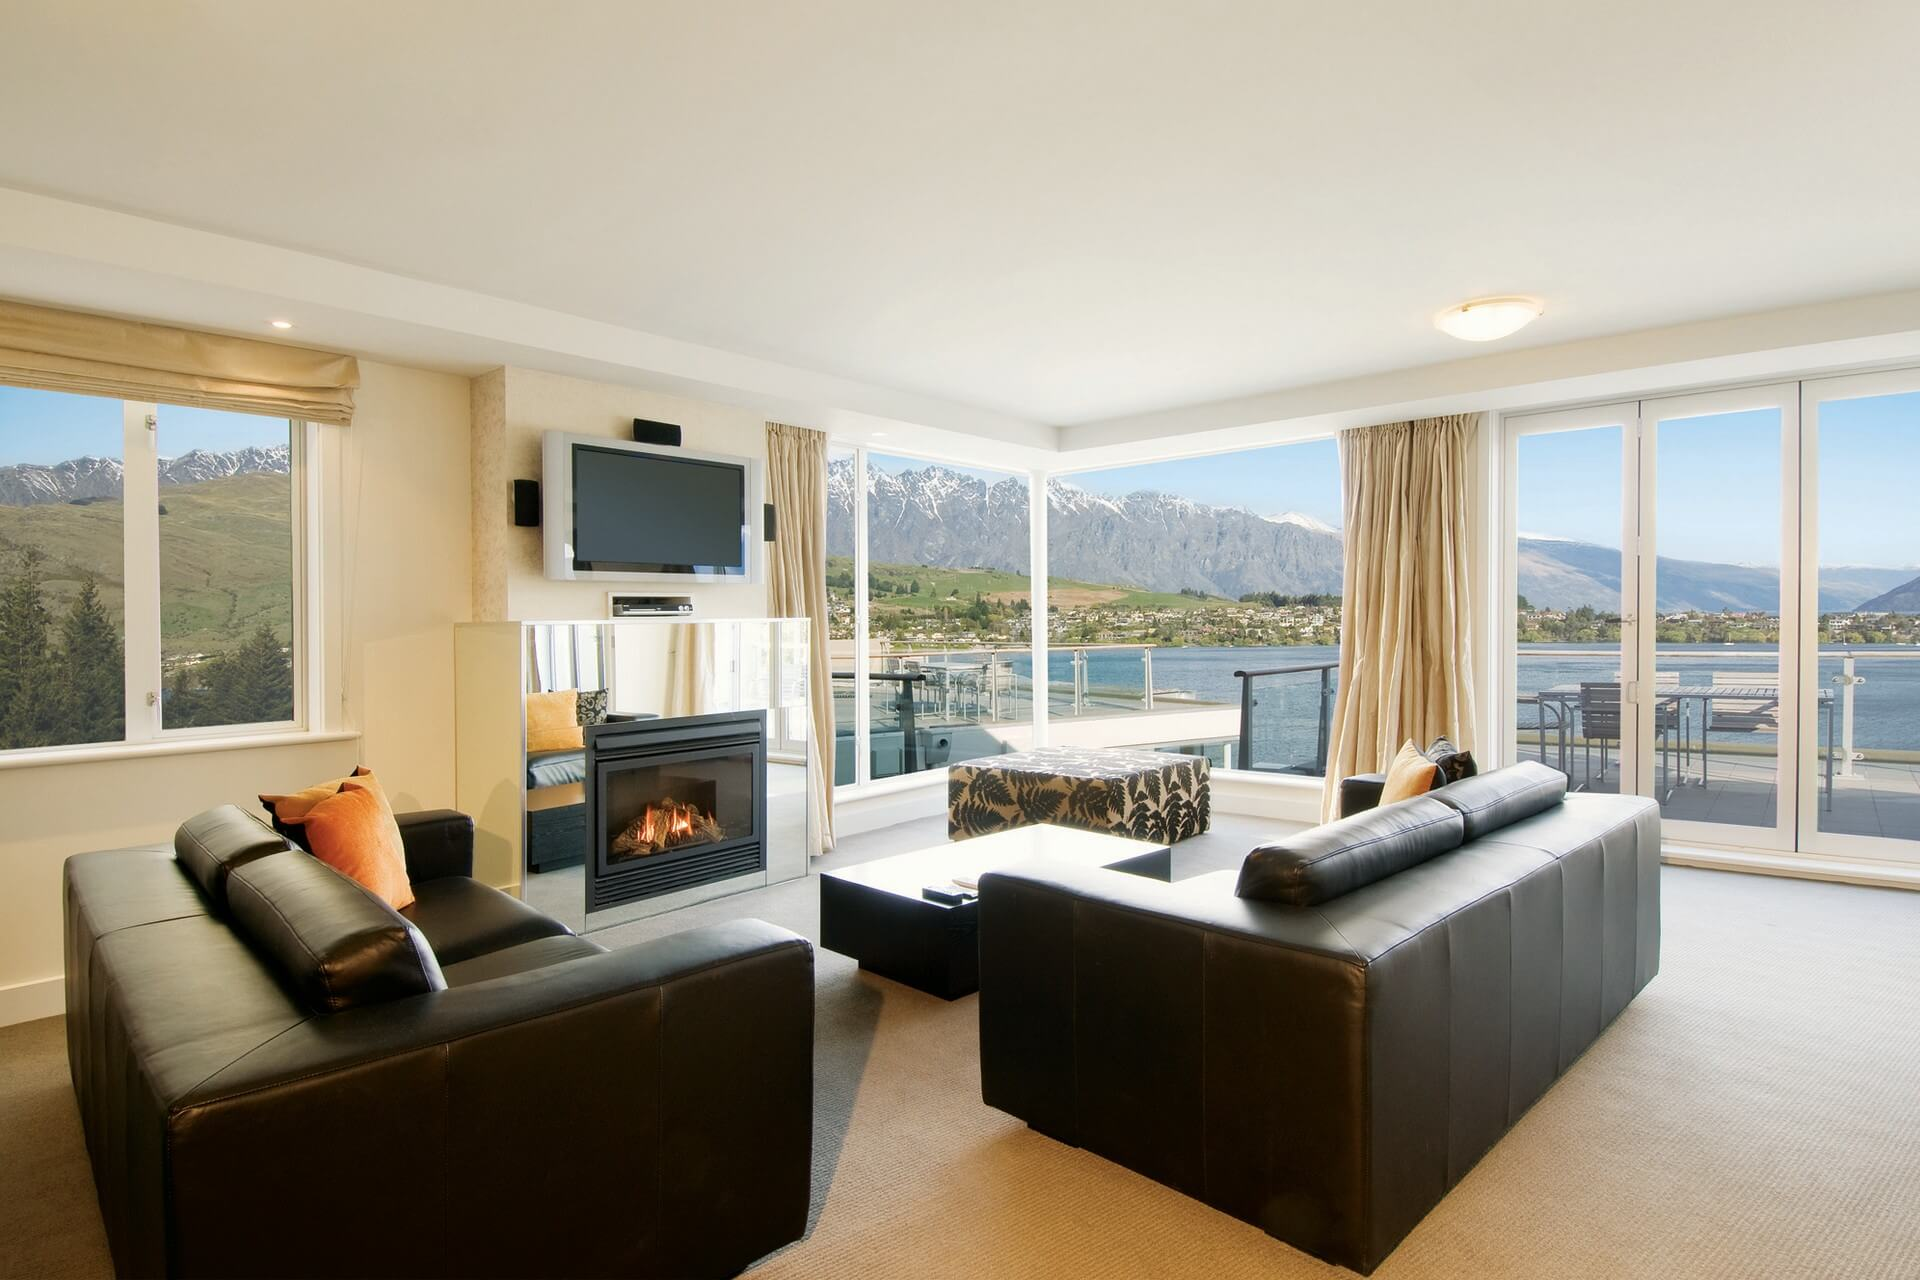 Queenstown_Oaks Club - Living Room View(1920x1280)